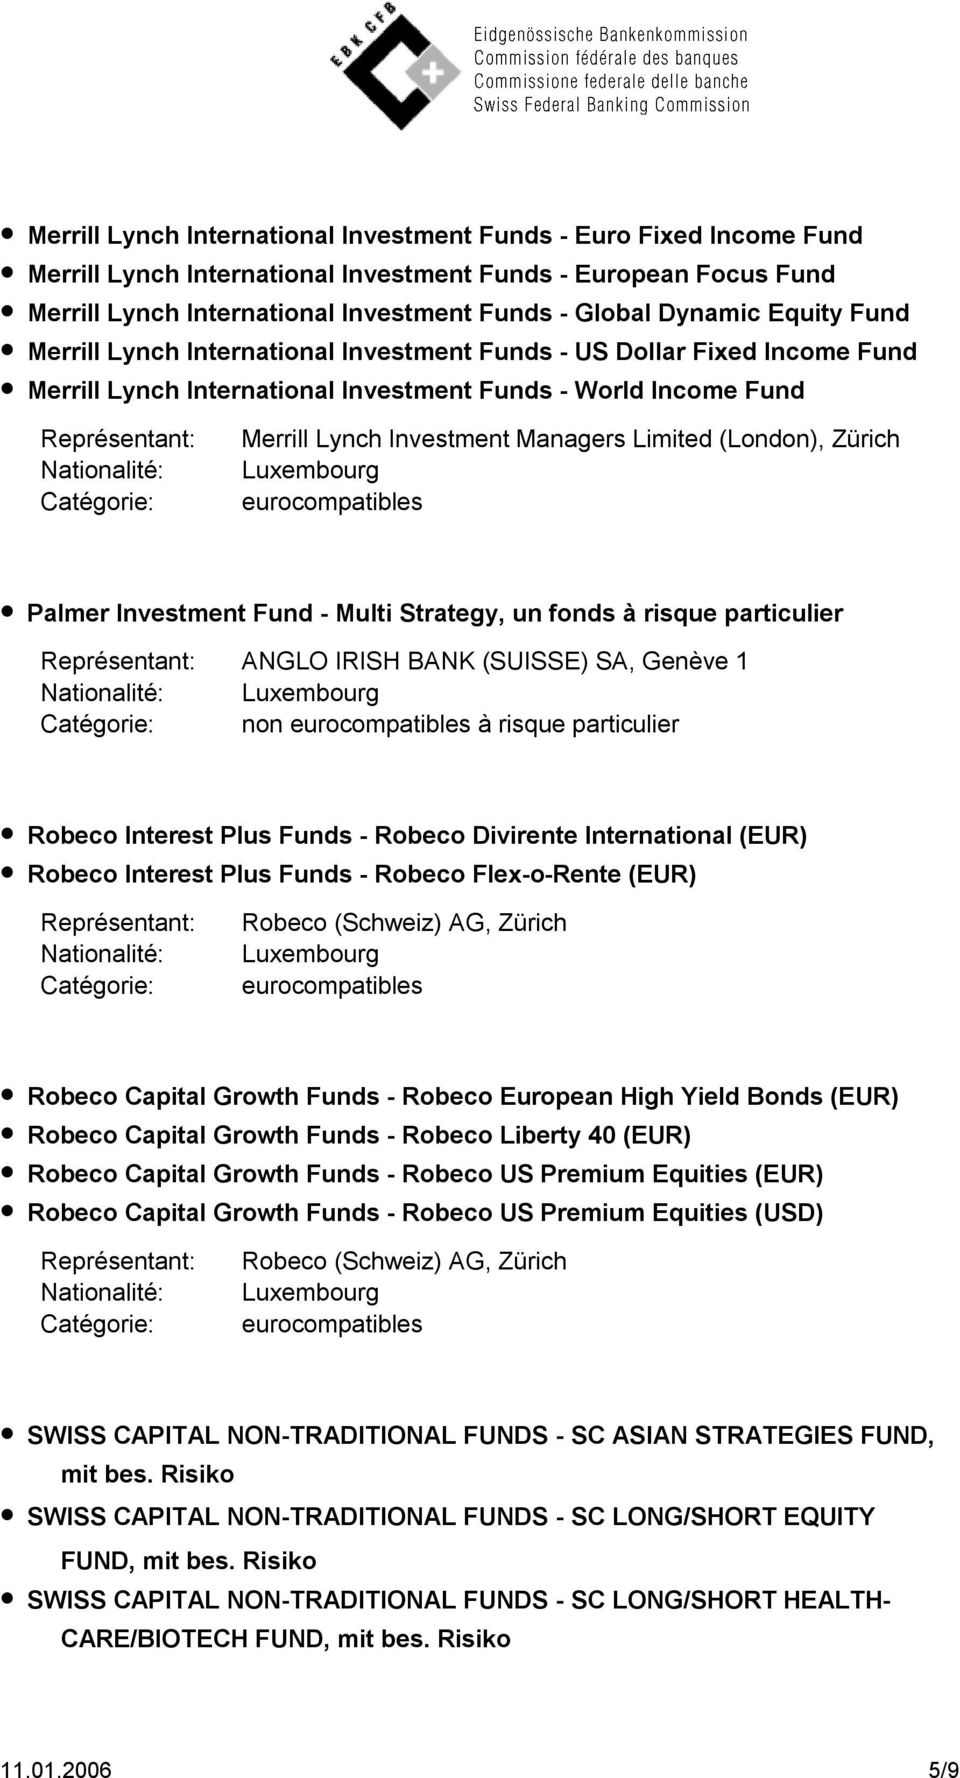 (London), Zürich Palmer Investment Fund - Multi Strategy, un fonds à risque particulier ANGLO IRISH BANK (SUISSE) SA, Genève 1 non à risque particulier Robeco Interest Plus Funds - Robeco Divirente